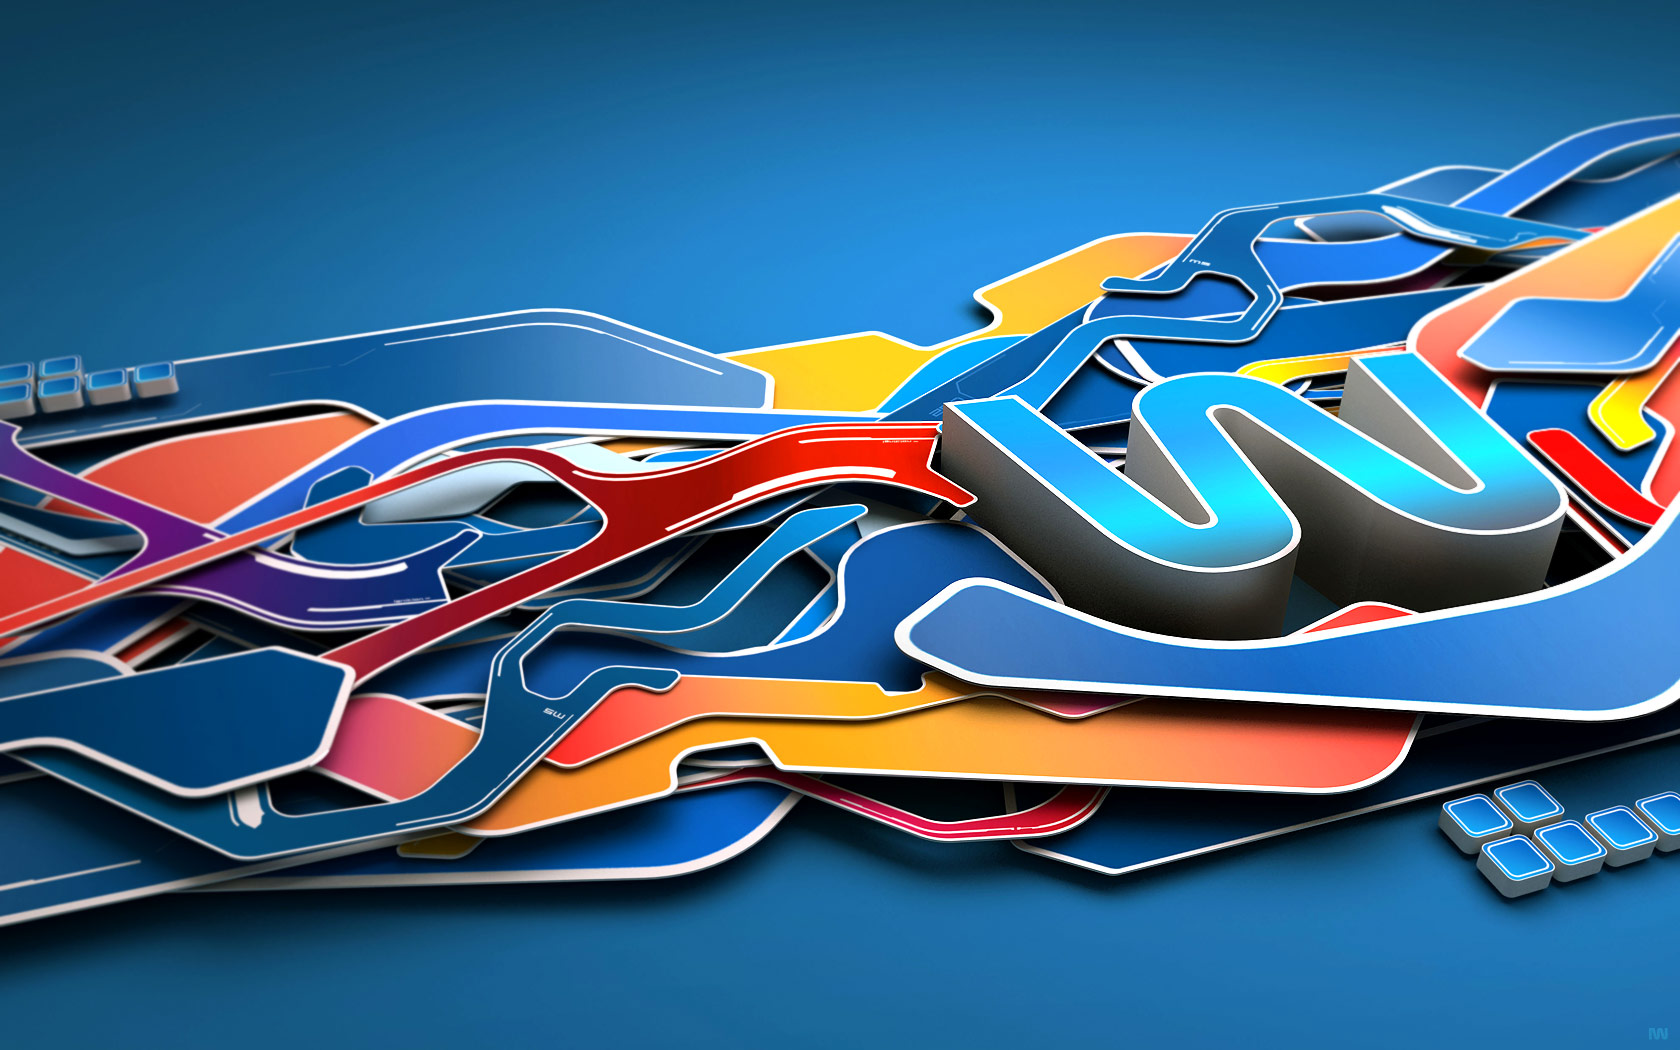 Cool 3D Abstract Graphic Design